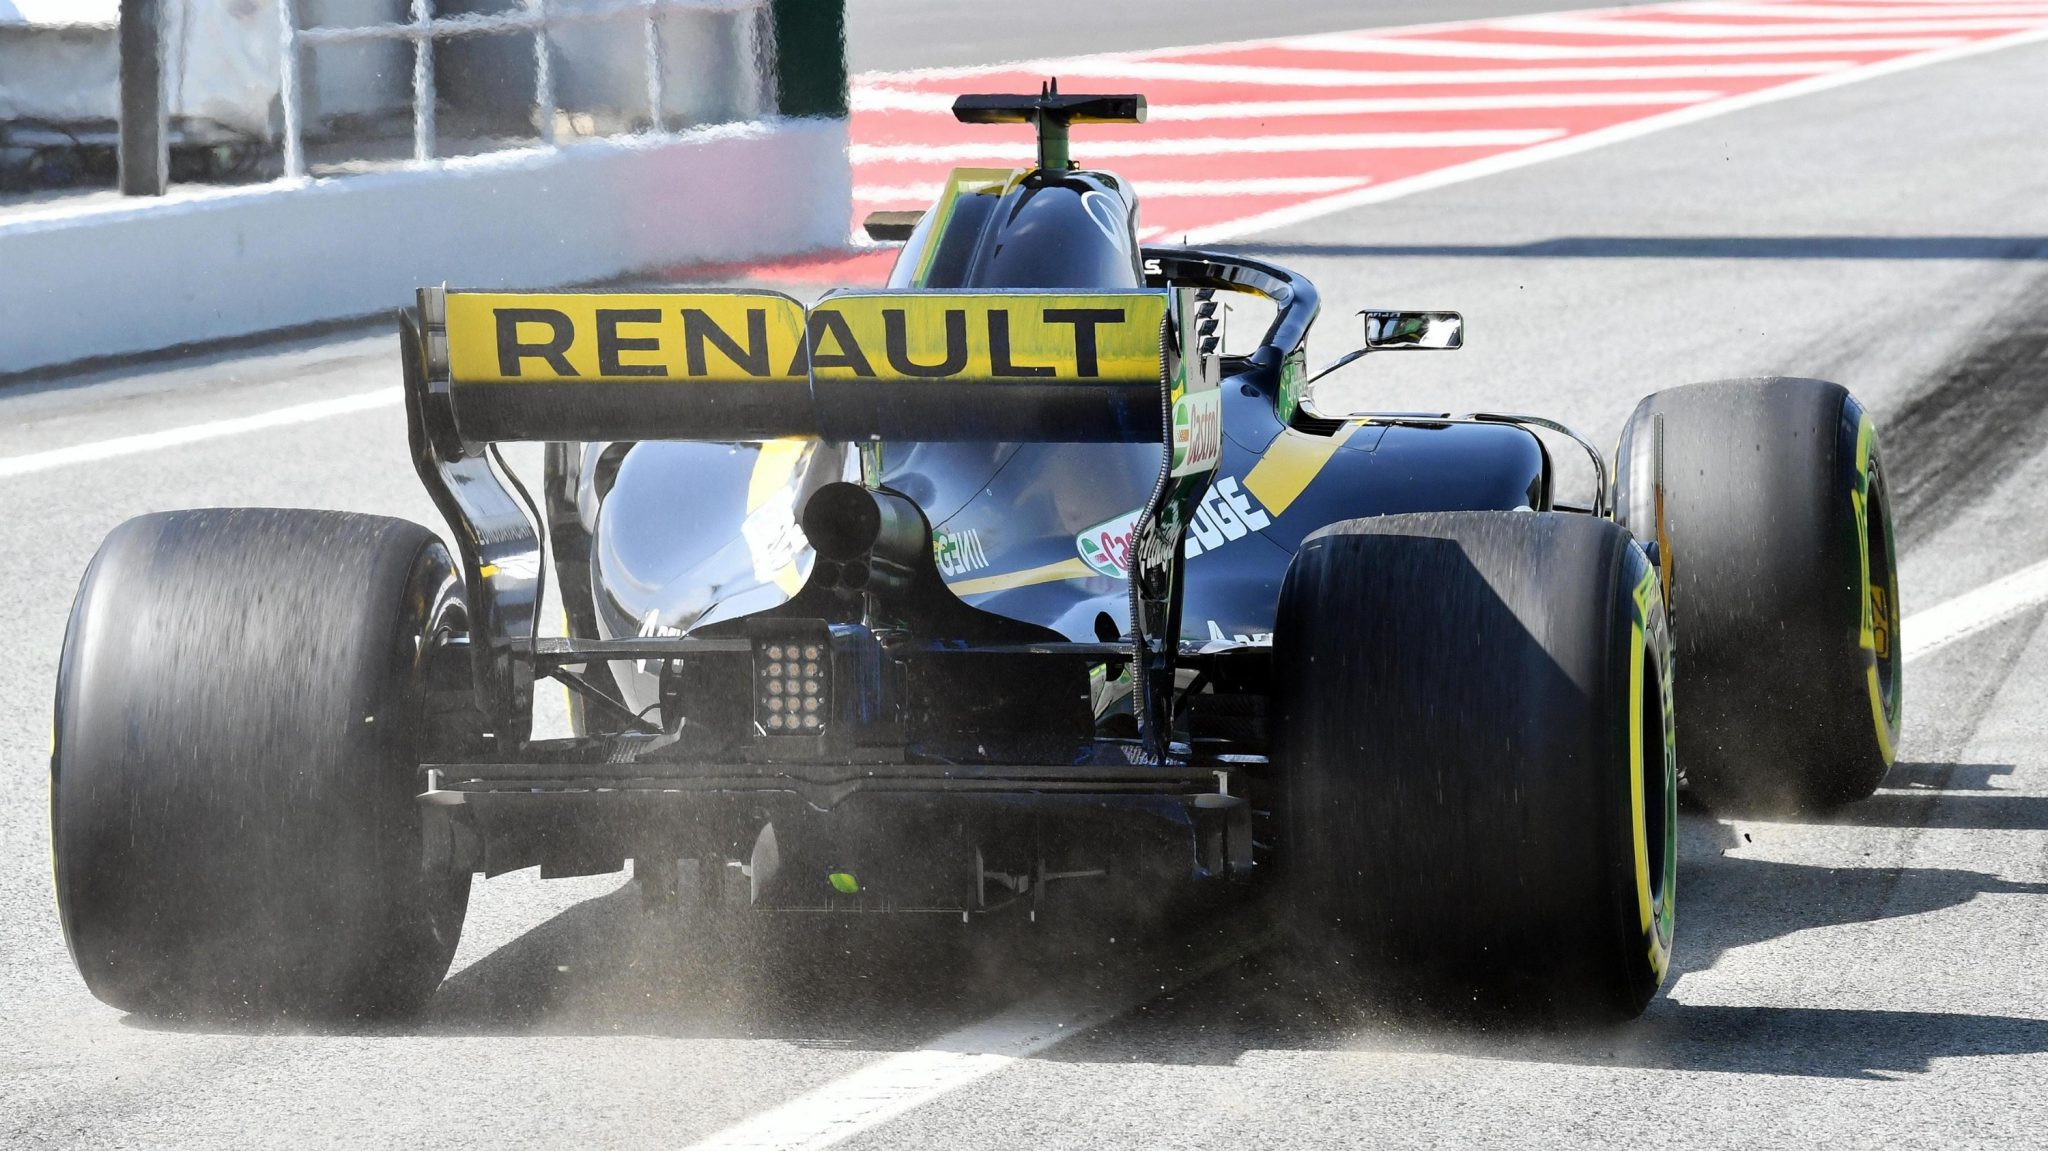 https://www.formula1.com/content/fom-website/en/latest/features/2018/5/gallery--the-best-images-from-friday-in-spain/_jcr_content/featureContent/manual_gallery/image31.img.2048.medium.jpg/1526042948692.jpg